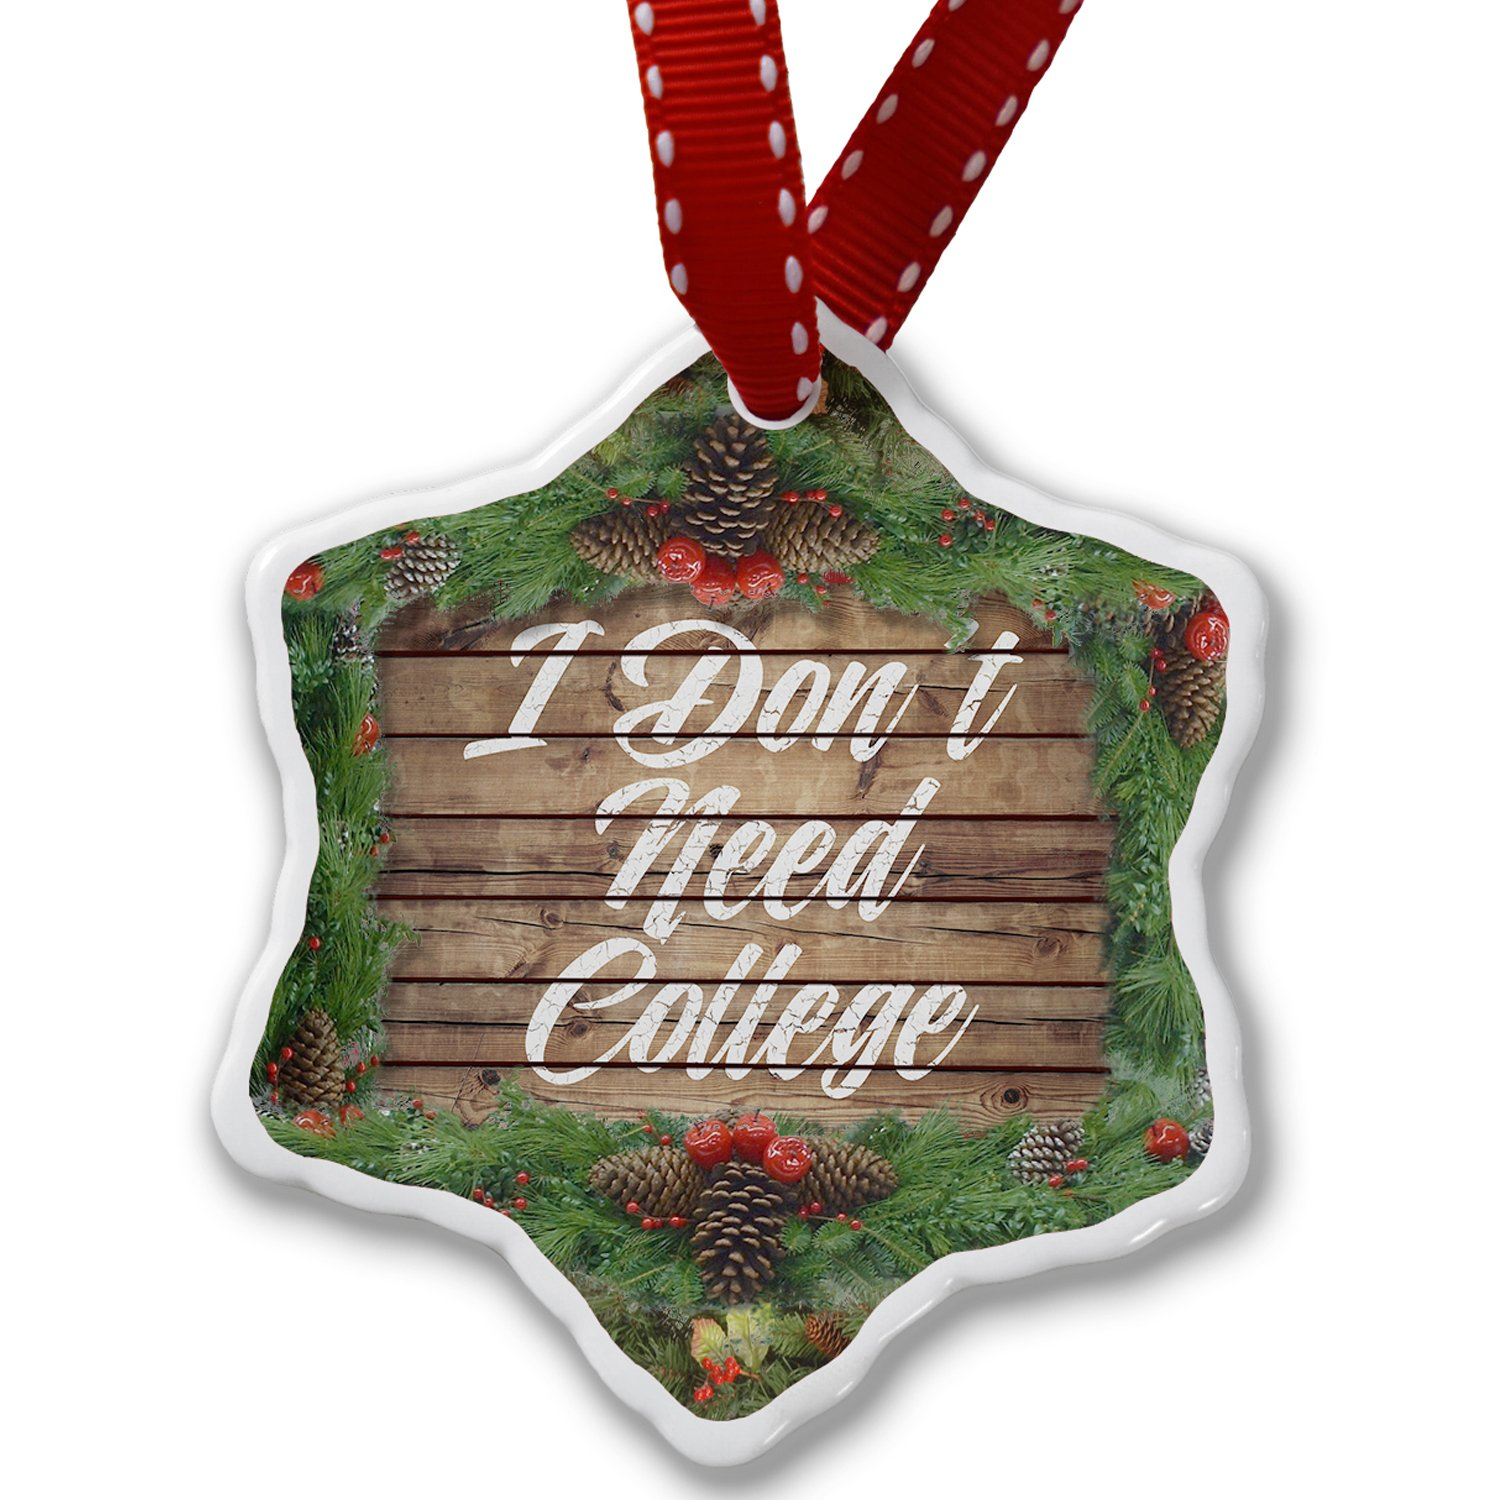 Christmas Ornament Painted Wood I Don't Need College - Neonblond by NEONBLOND (Image #1)